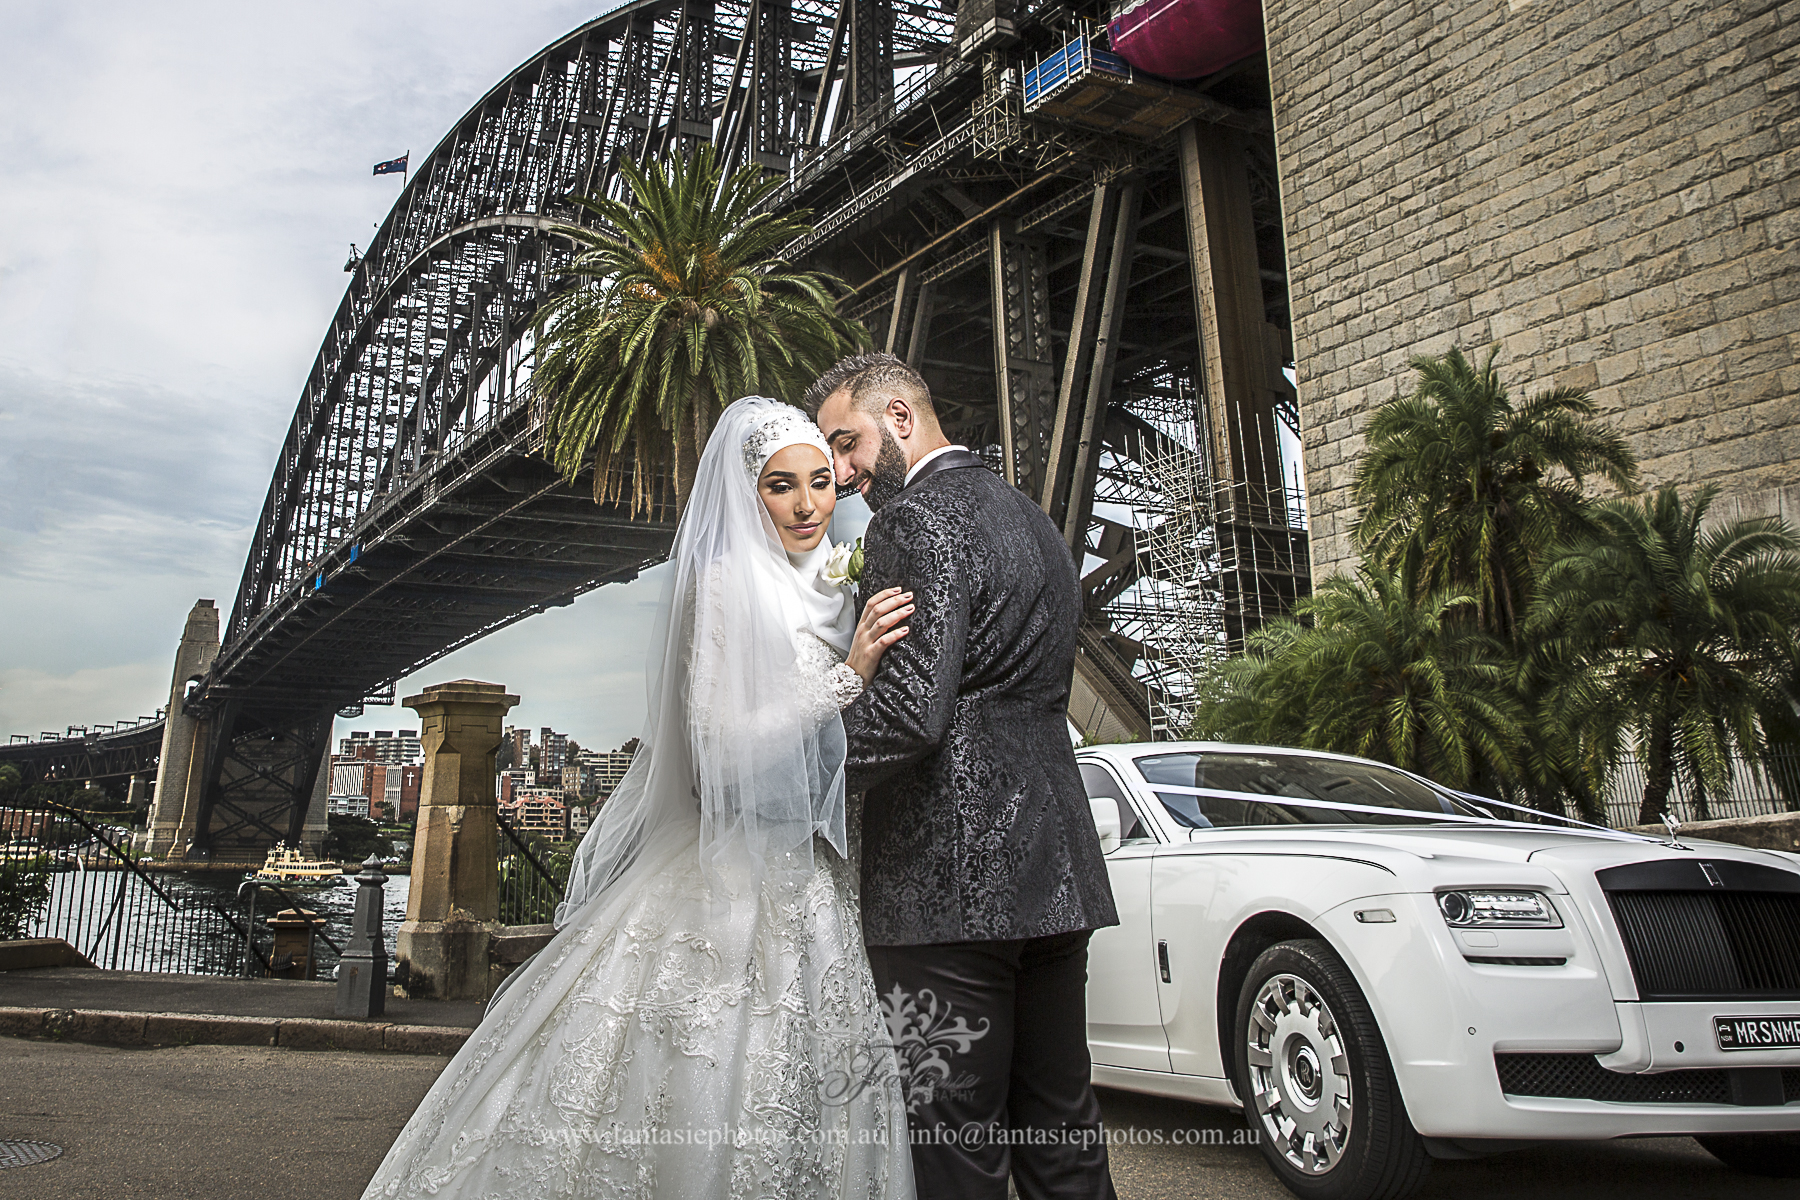 Wedding Photography Sydney Harbour Bridge | Fantasie Photography